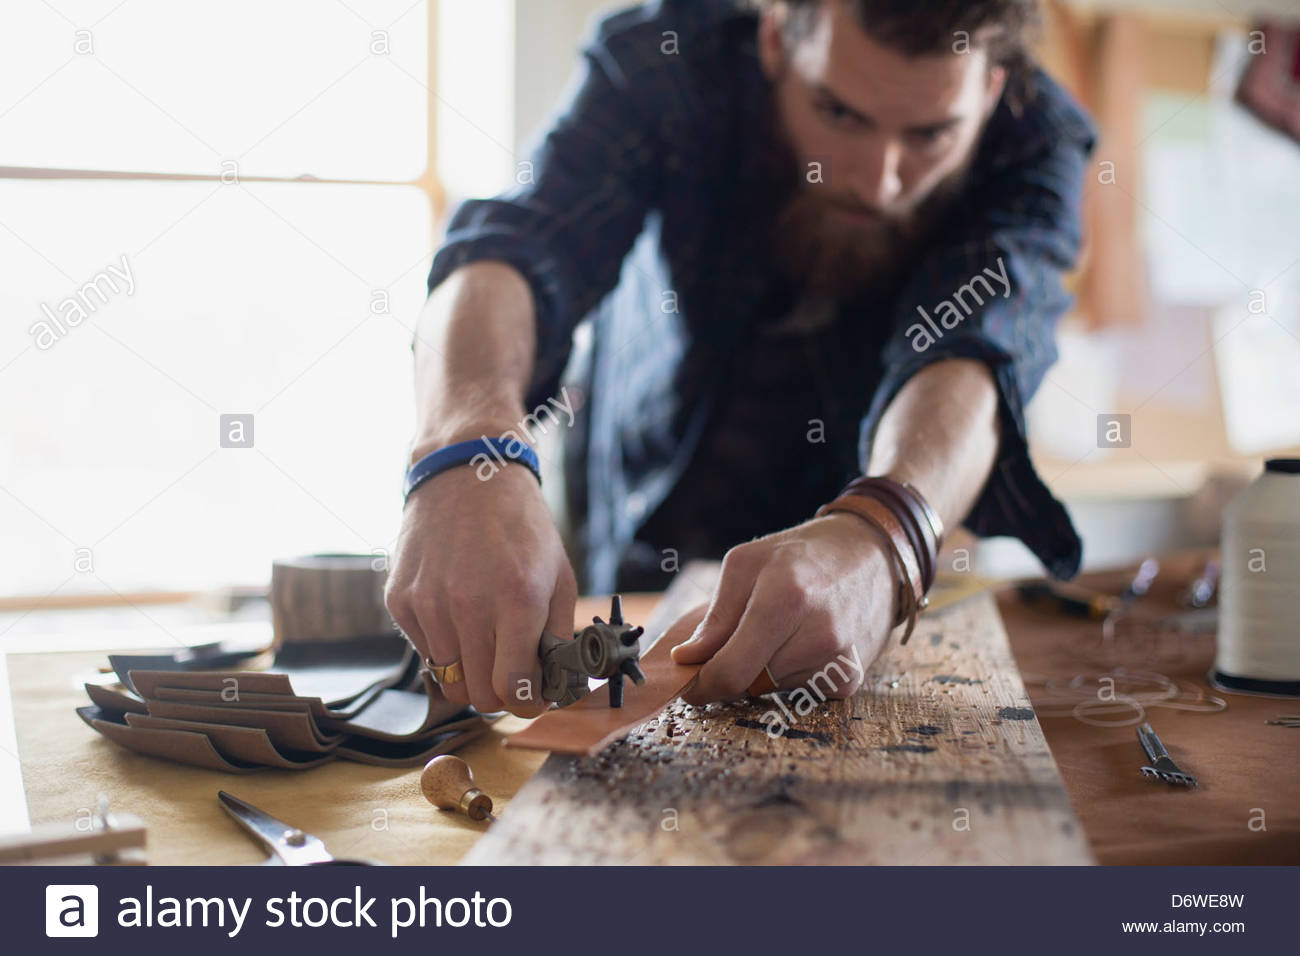 Man punching holes in leather belt at table - Stock Image